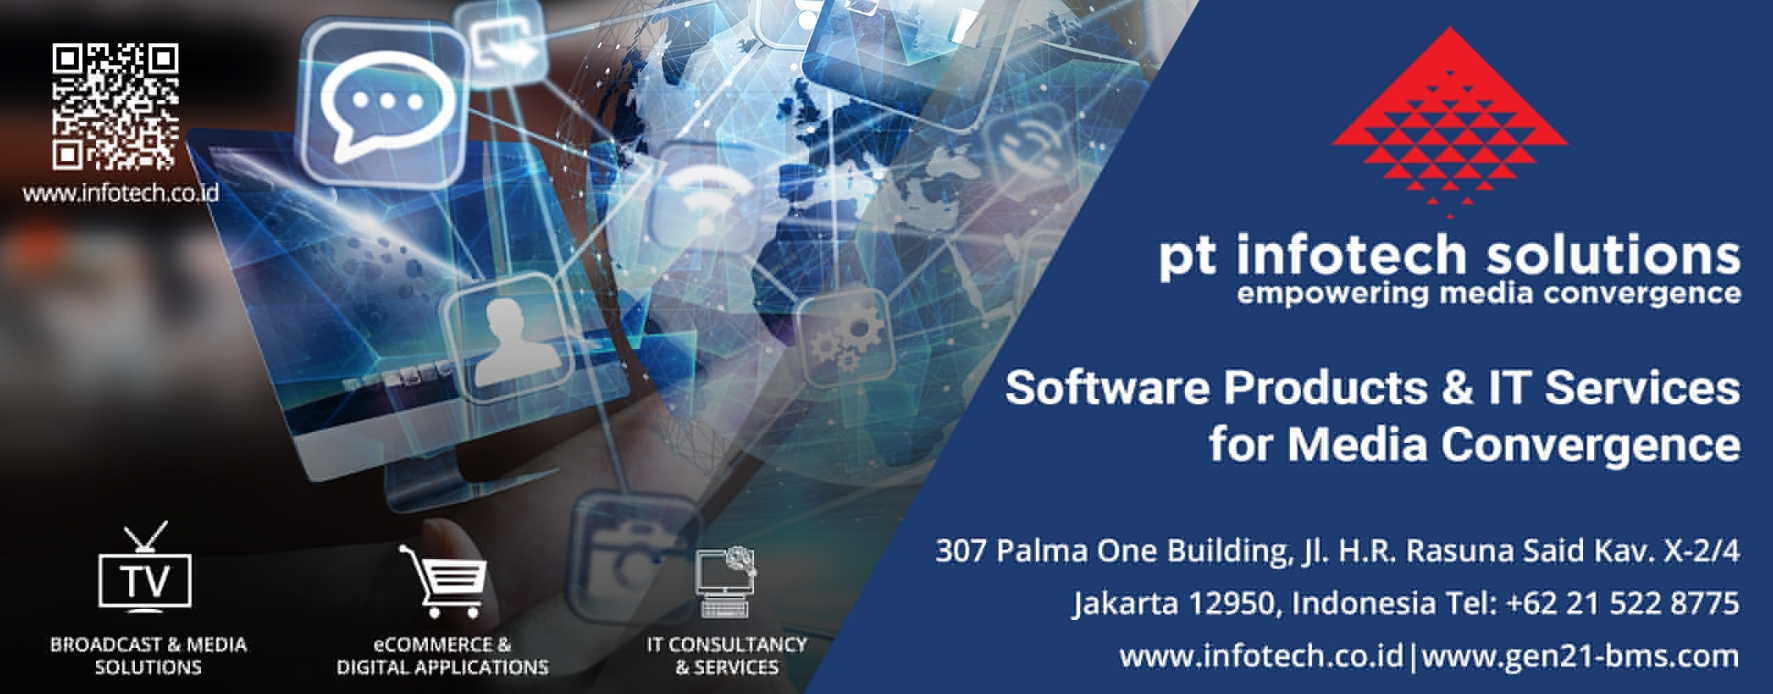 PT Infotech Solutions: Empowering Media Convergence